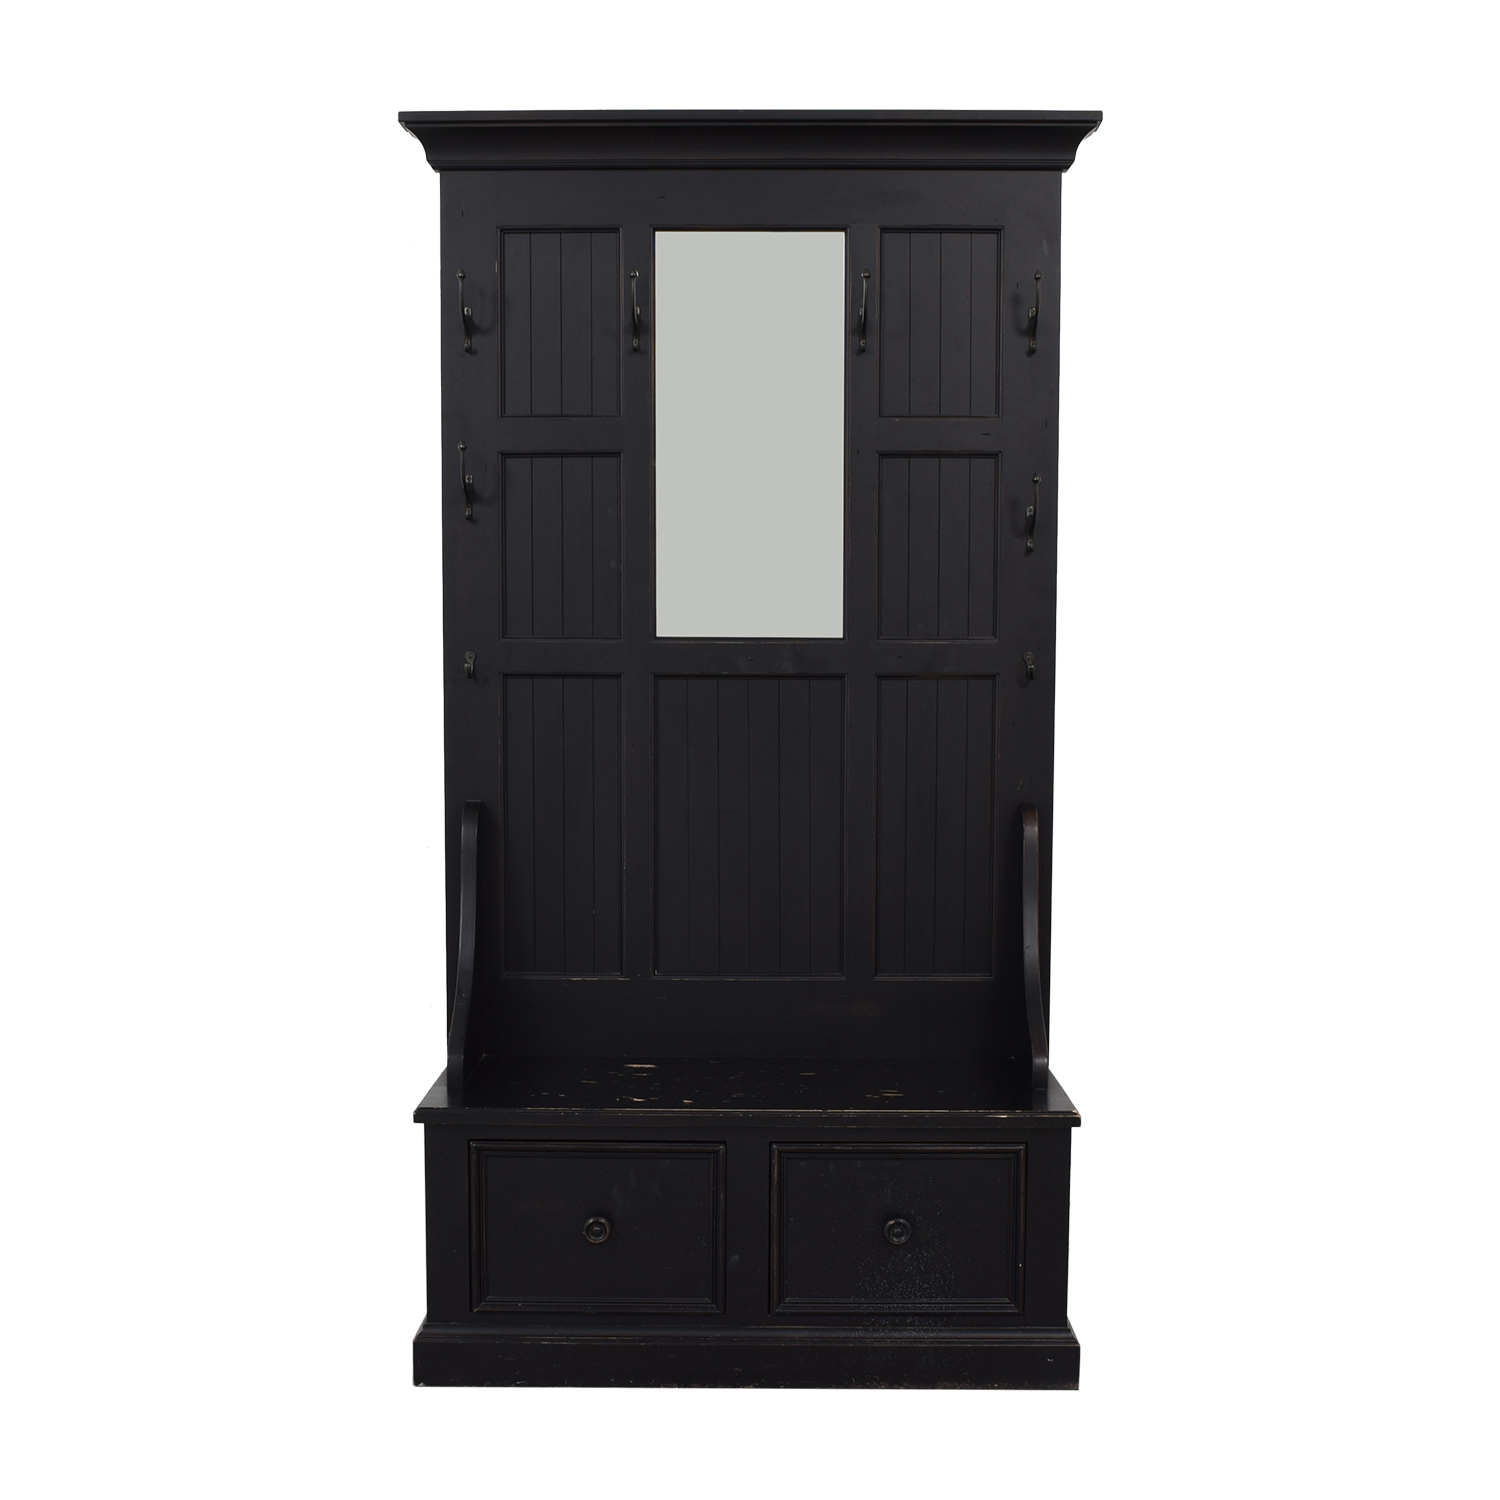 Ethan Allen Ethan Allen Charcoal Logan Hall price